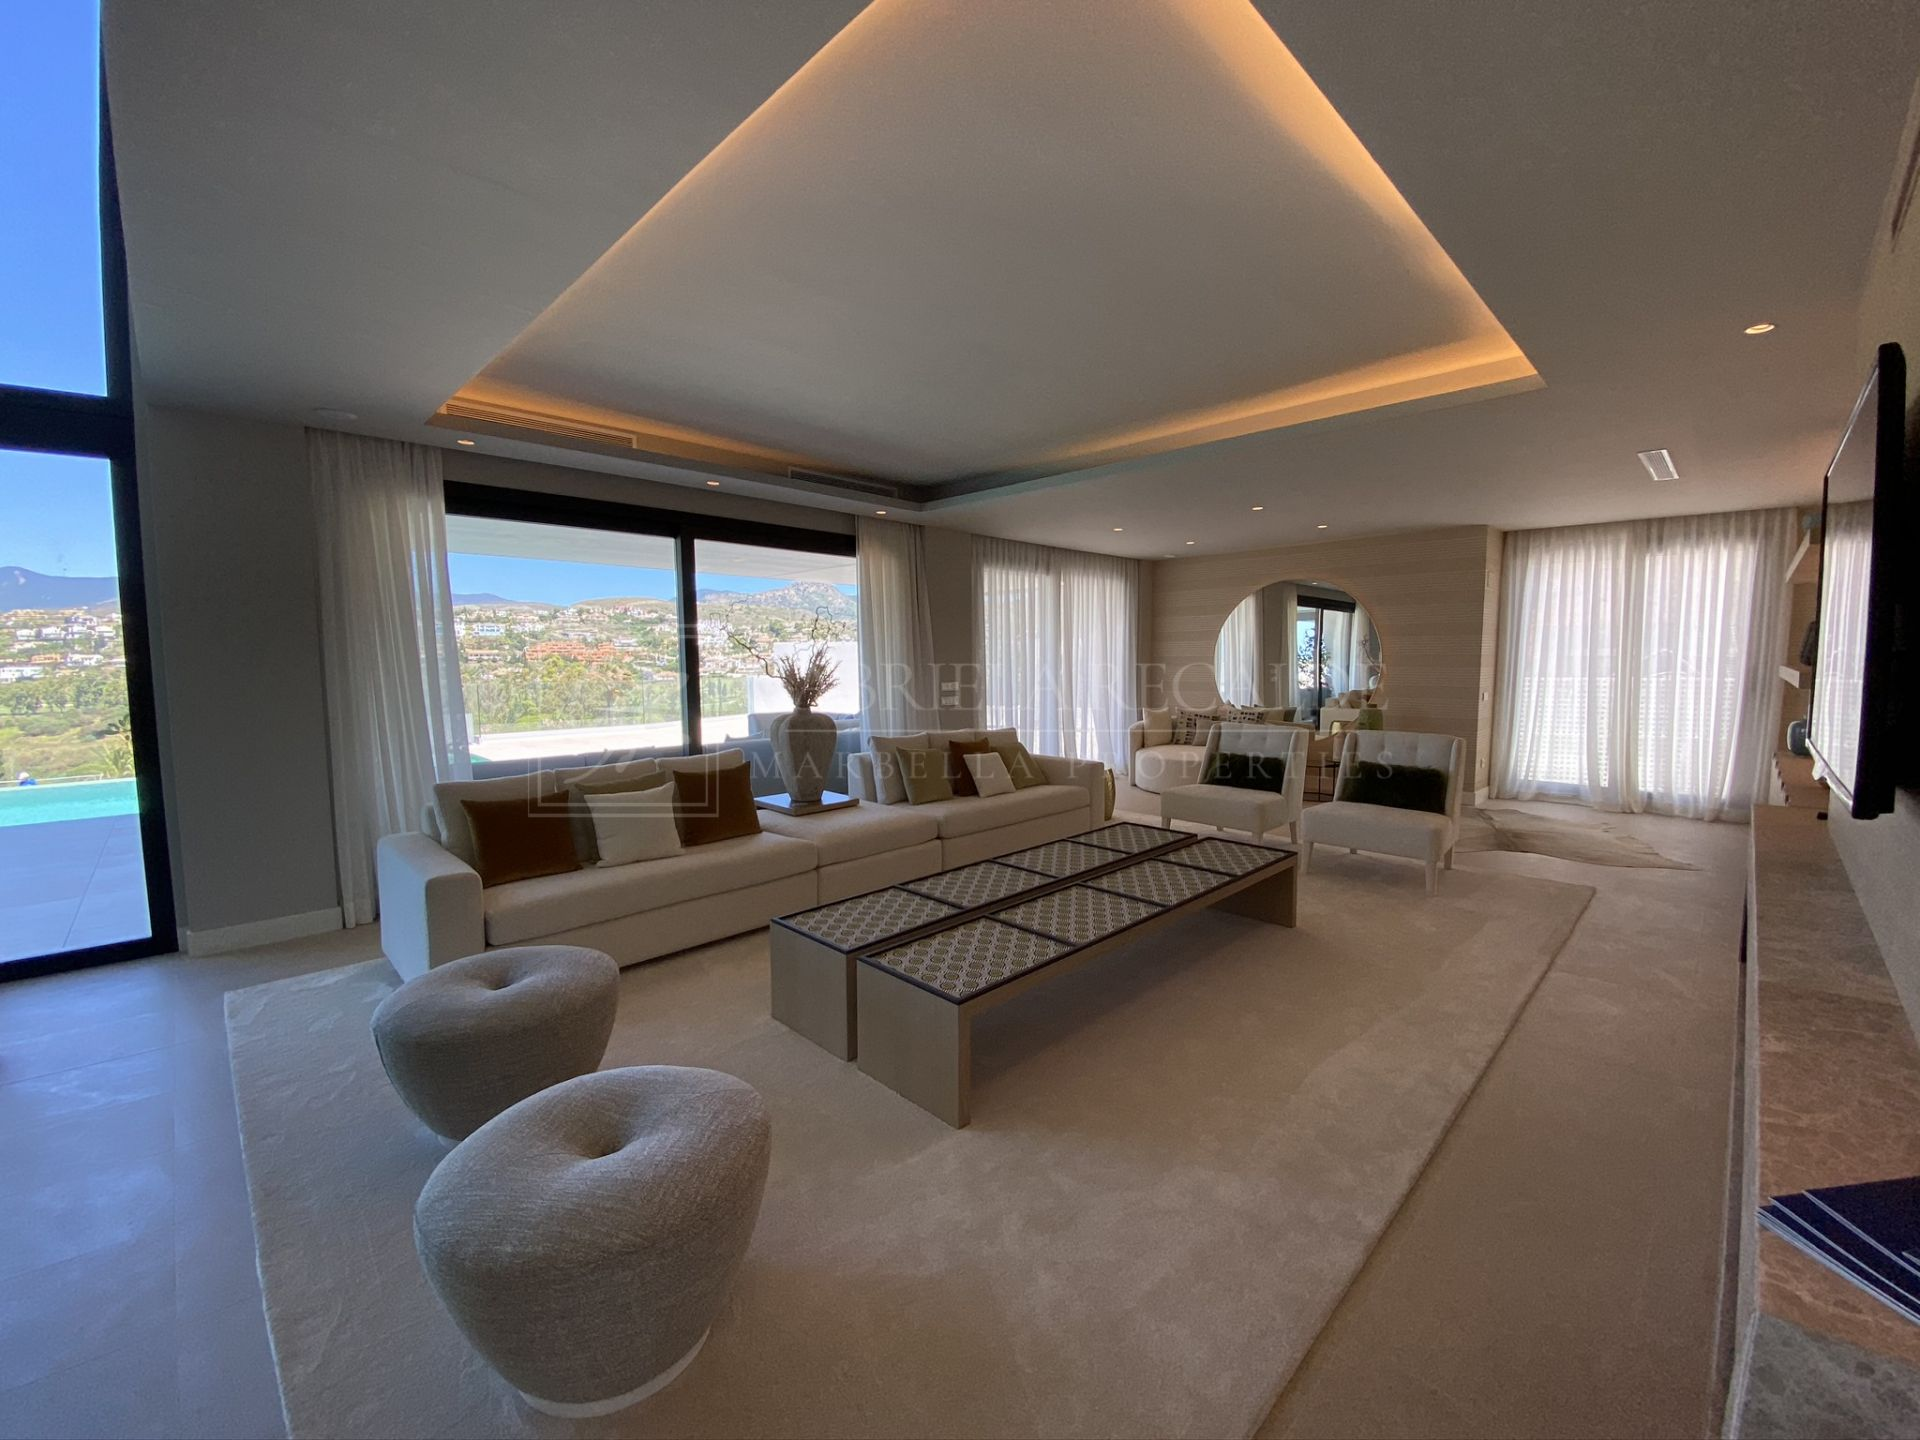 Modern villa with panoramic views in New Golden Mile - 10 min from Puerto Banus